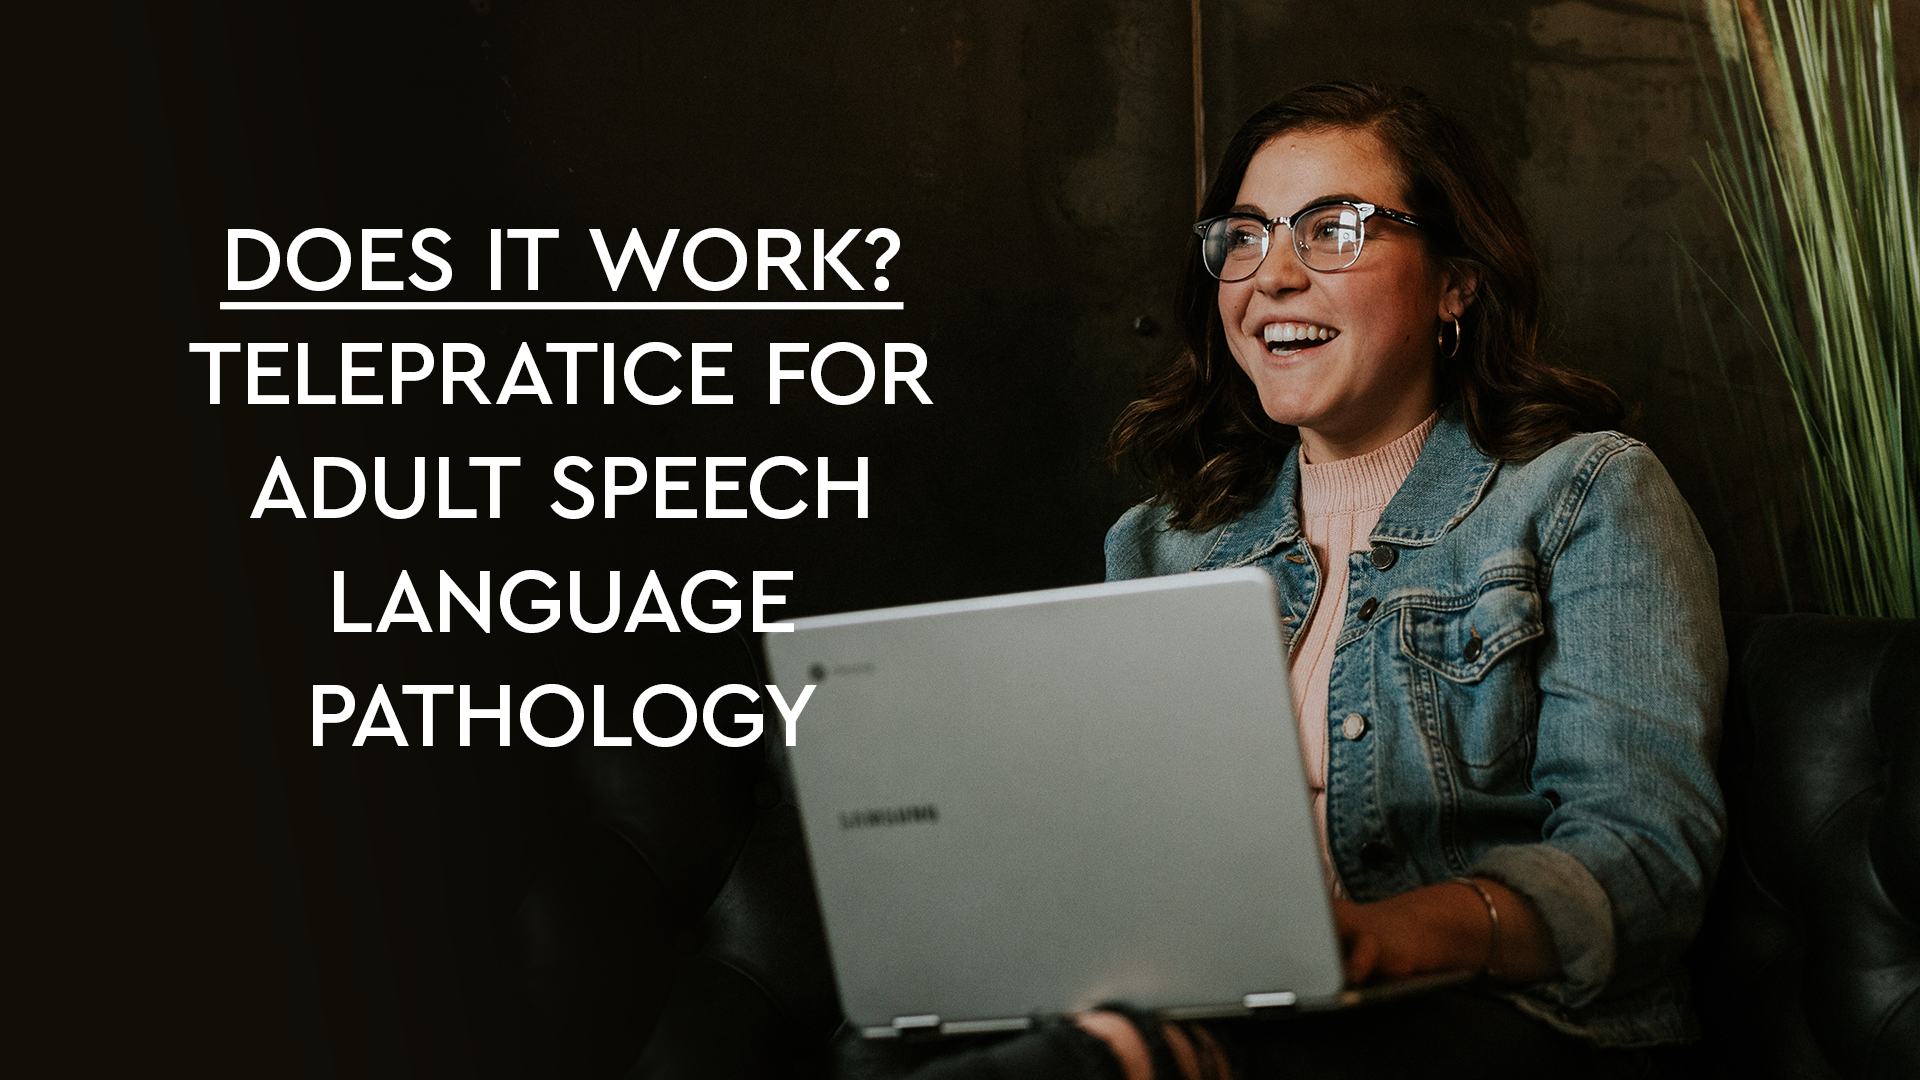 Telepractice for Adult Speech Language Pathology